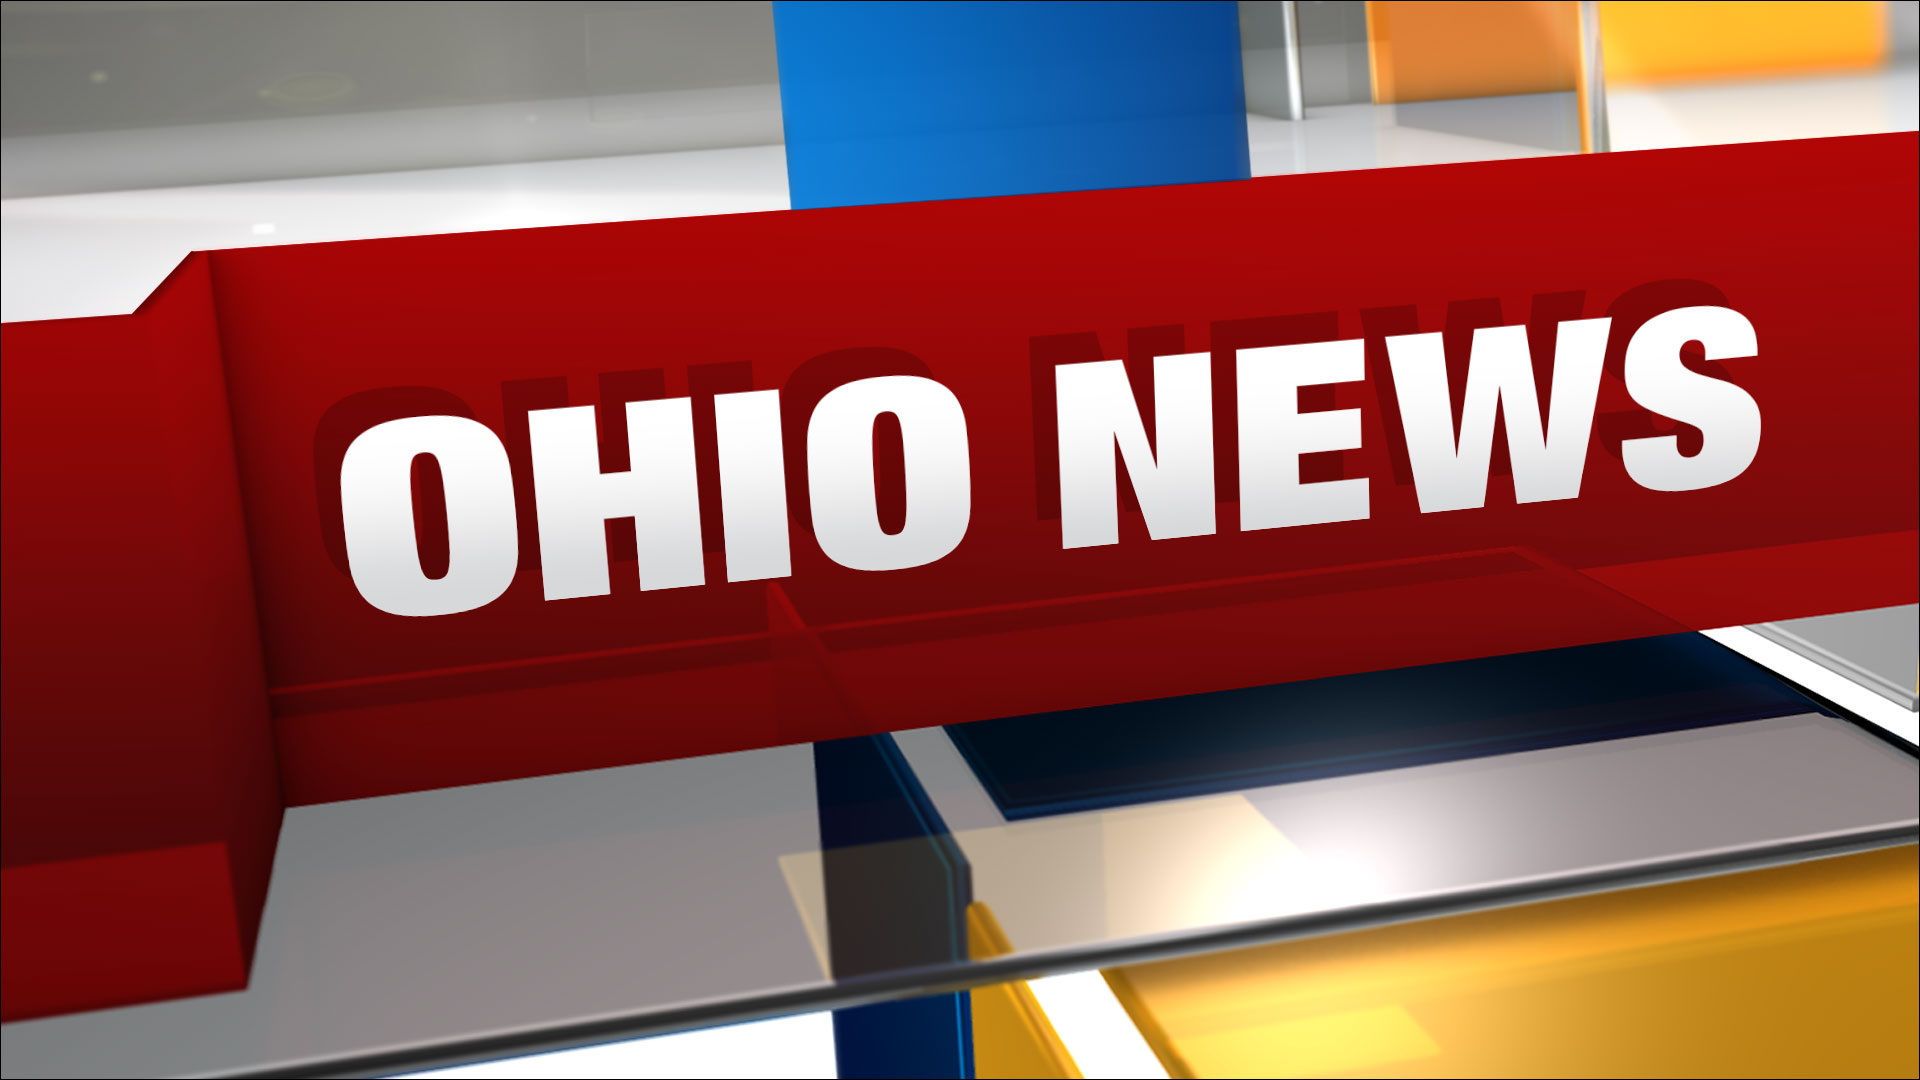 OHIO News Generic